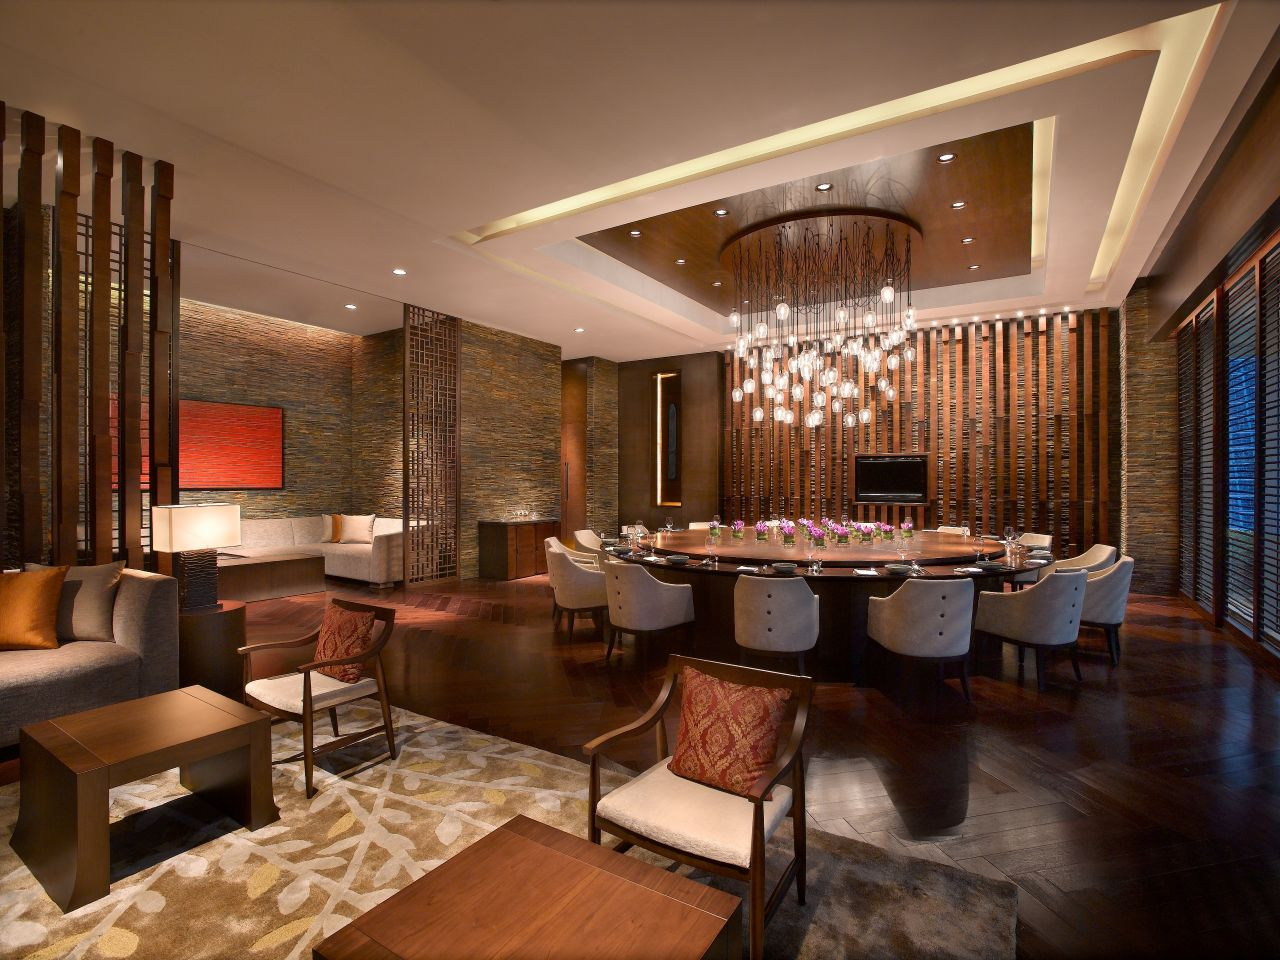 7 Zhongtian Road Private Room